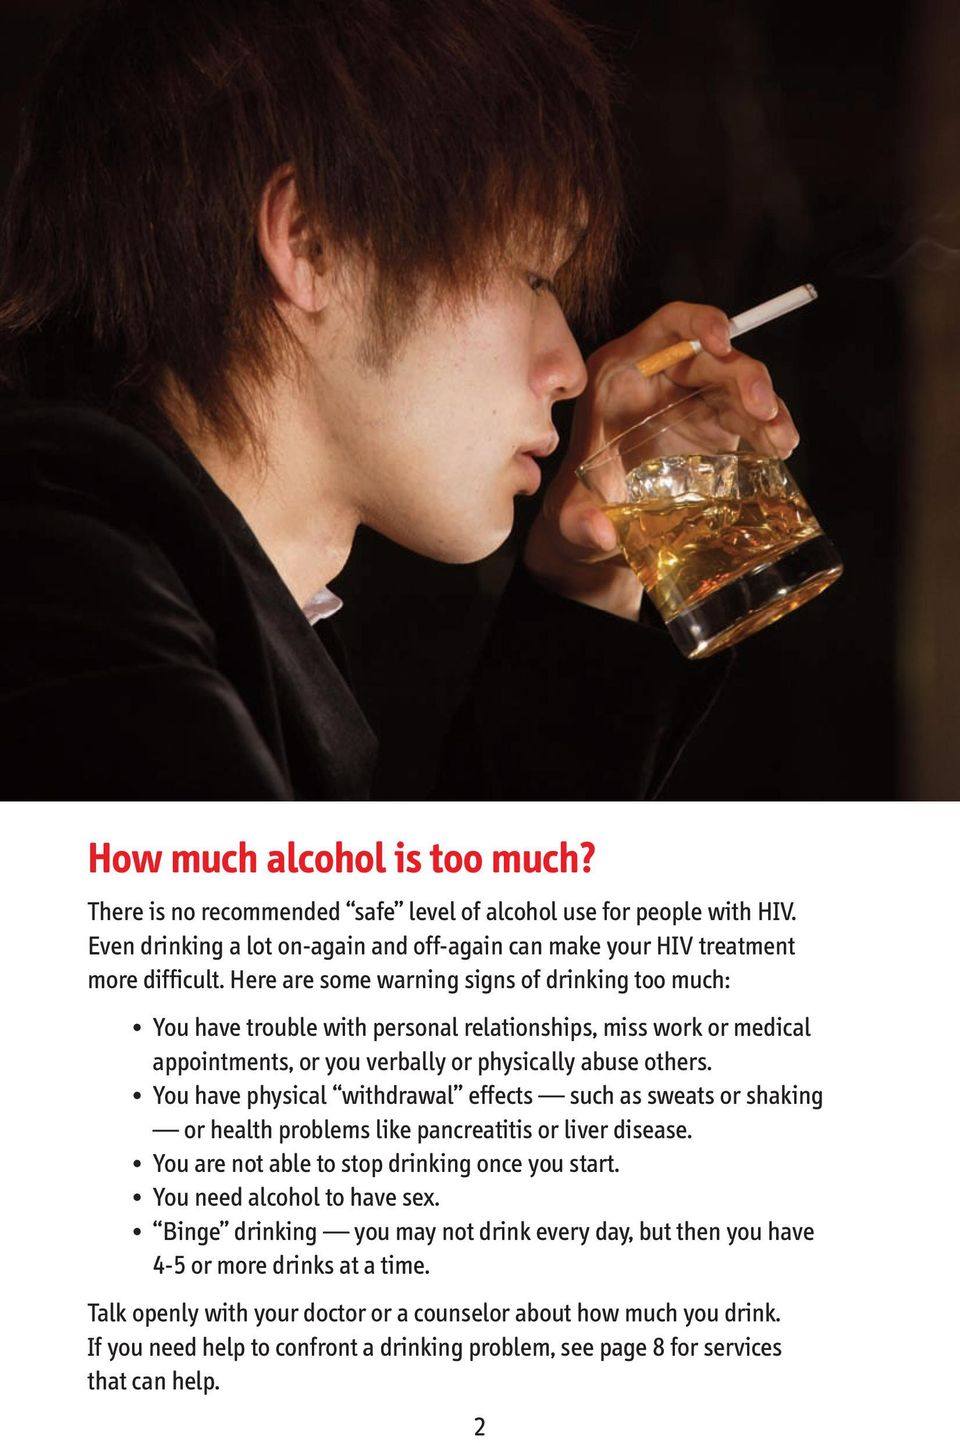 You have physical withdrawal effects such as sweats or shaking or health problems like pancreatitis or liver disease. You are not able to stop drinking once you start. You need alcohol to have sex.